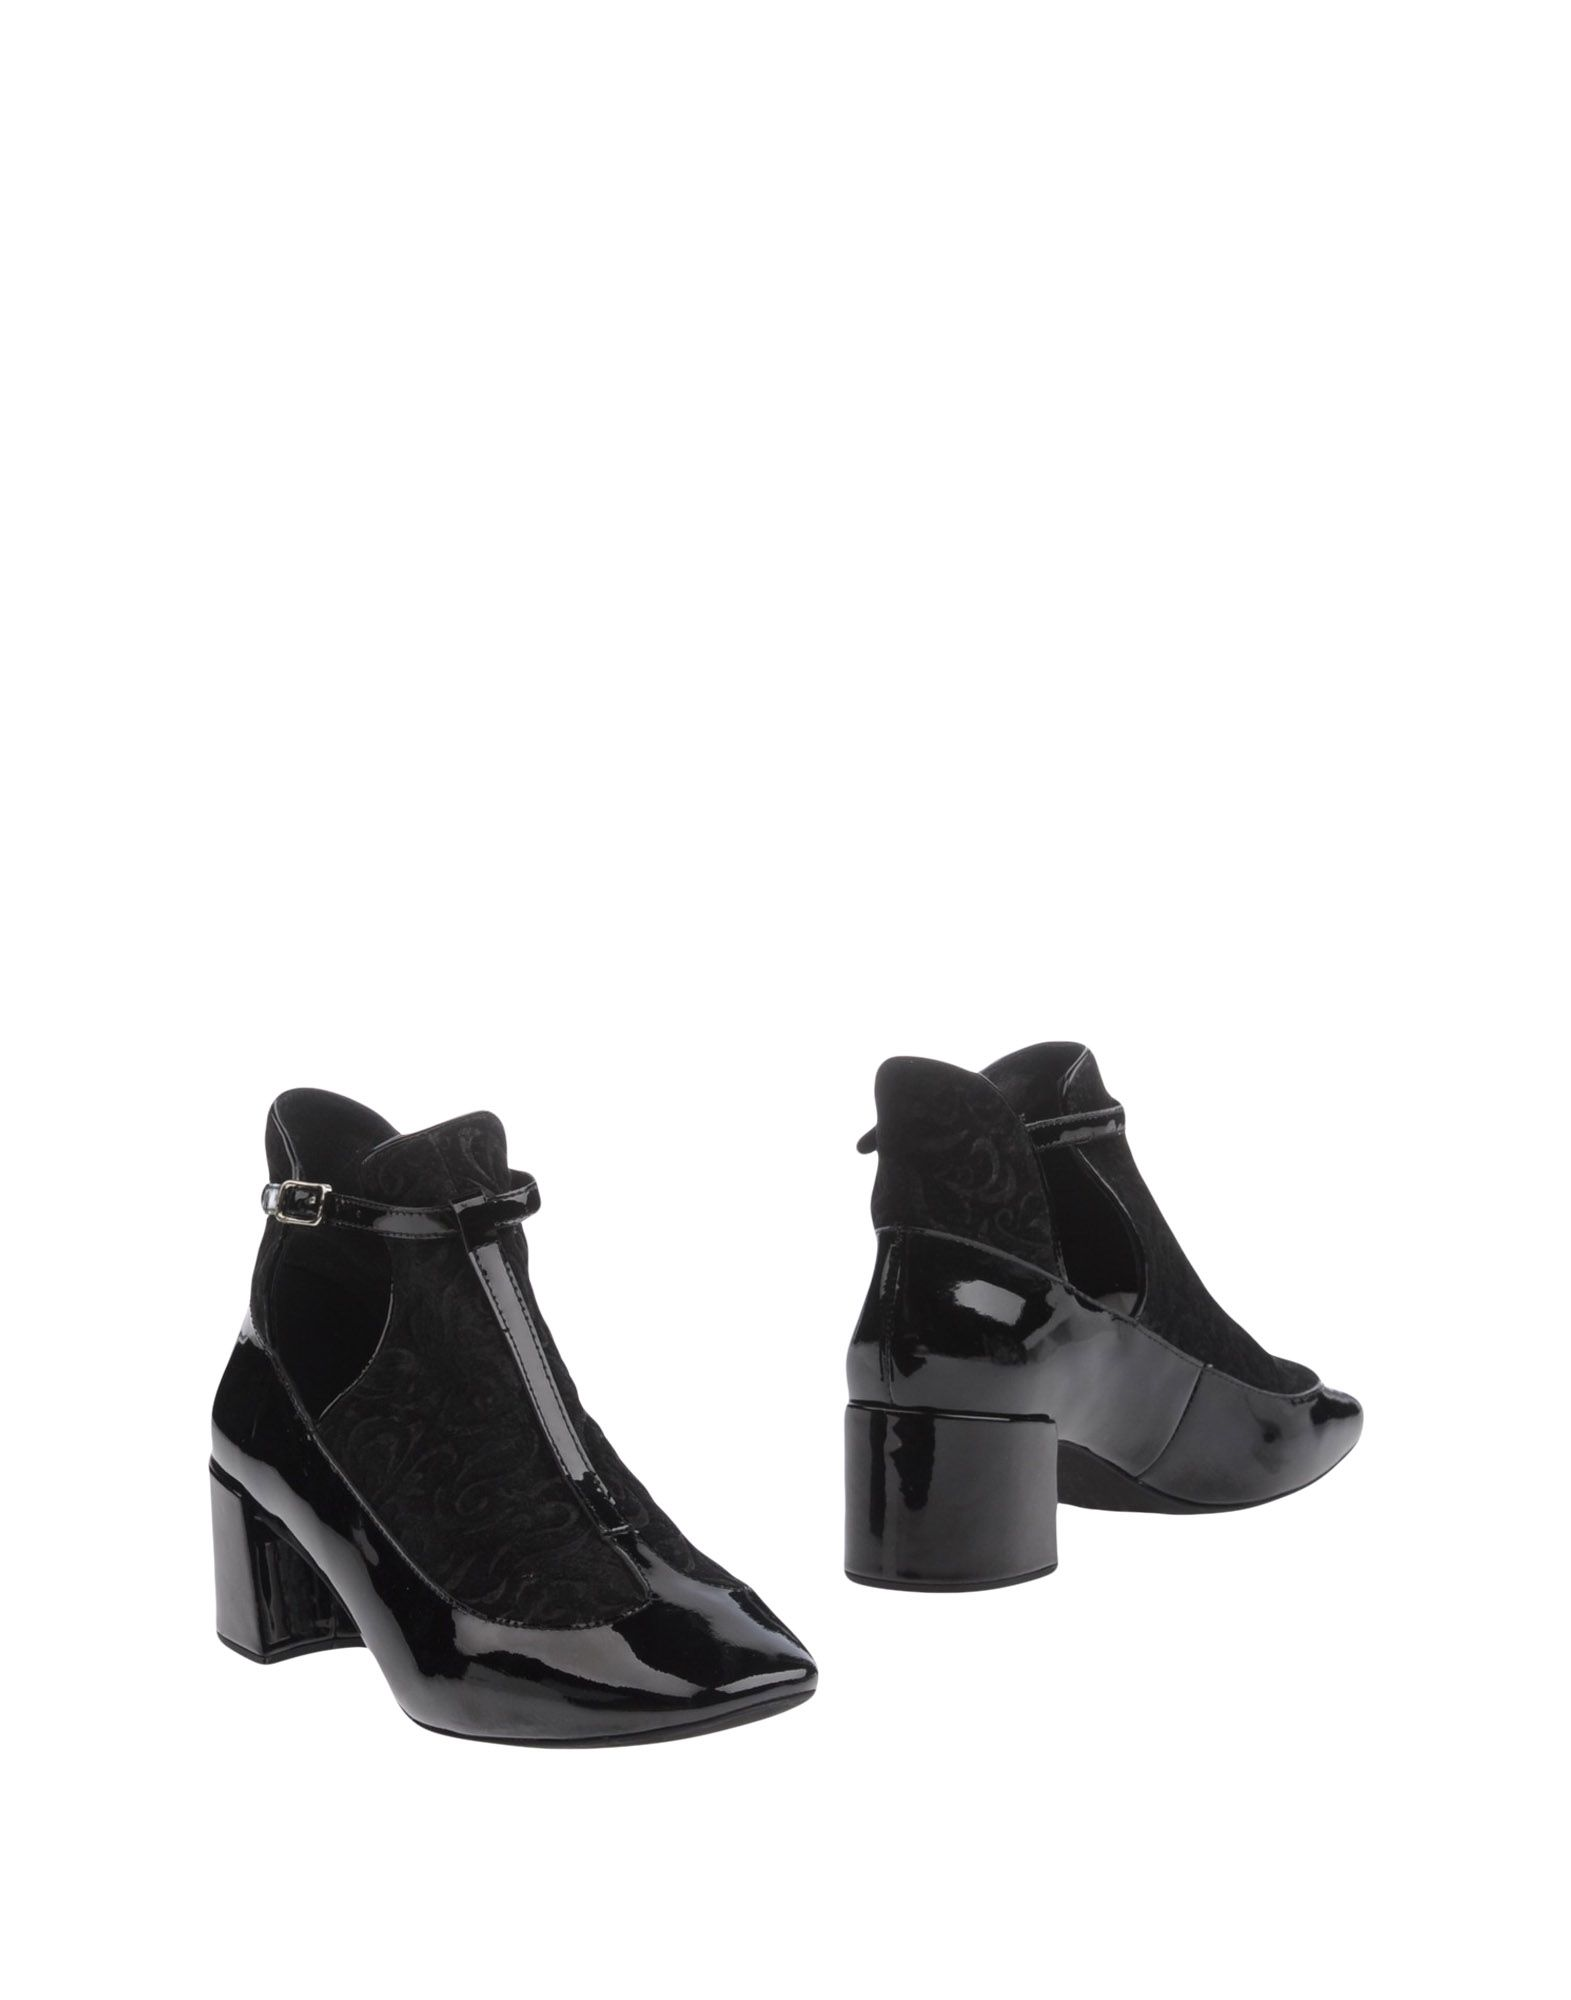 Jeffrey Campbell Ankle Boot - Women Jeffrey Campbell Ankle Boots - online on  Australia - Boots 11239536CC 5ffb0f